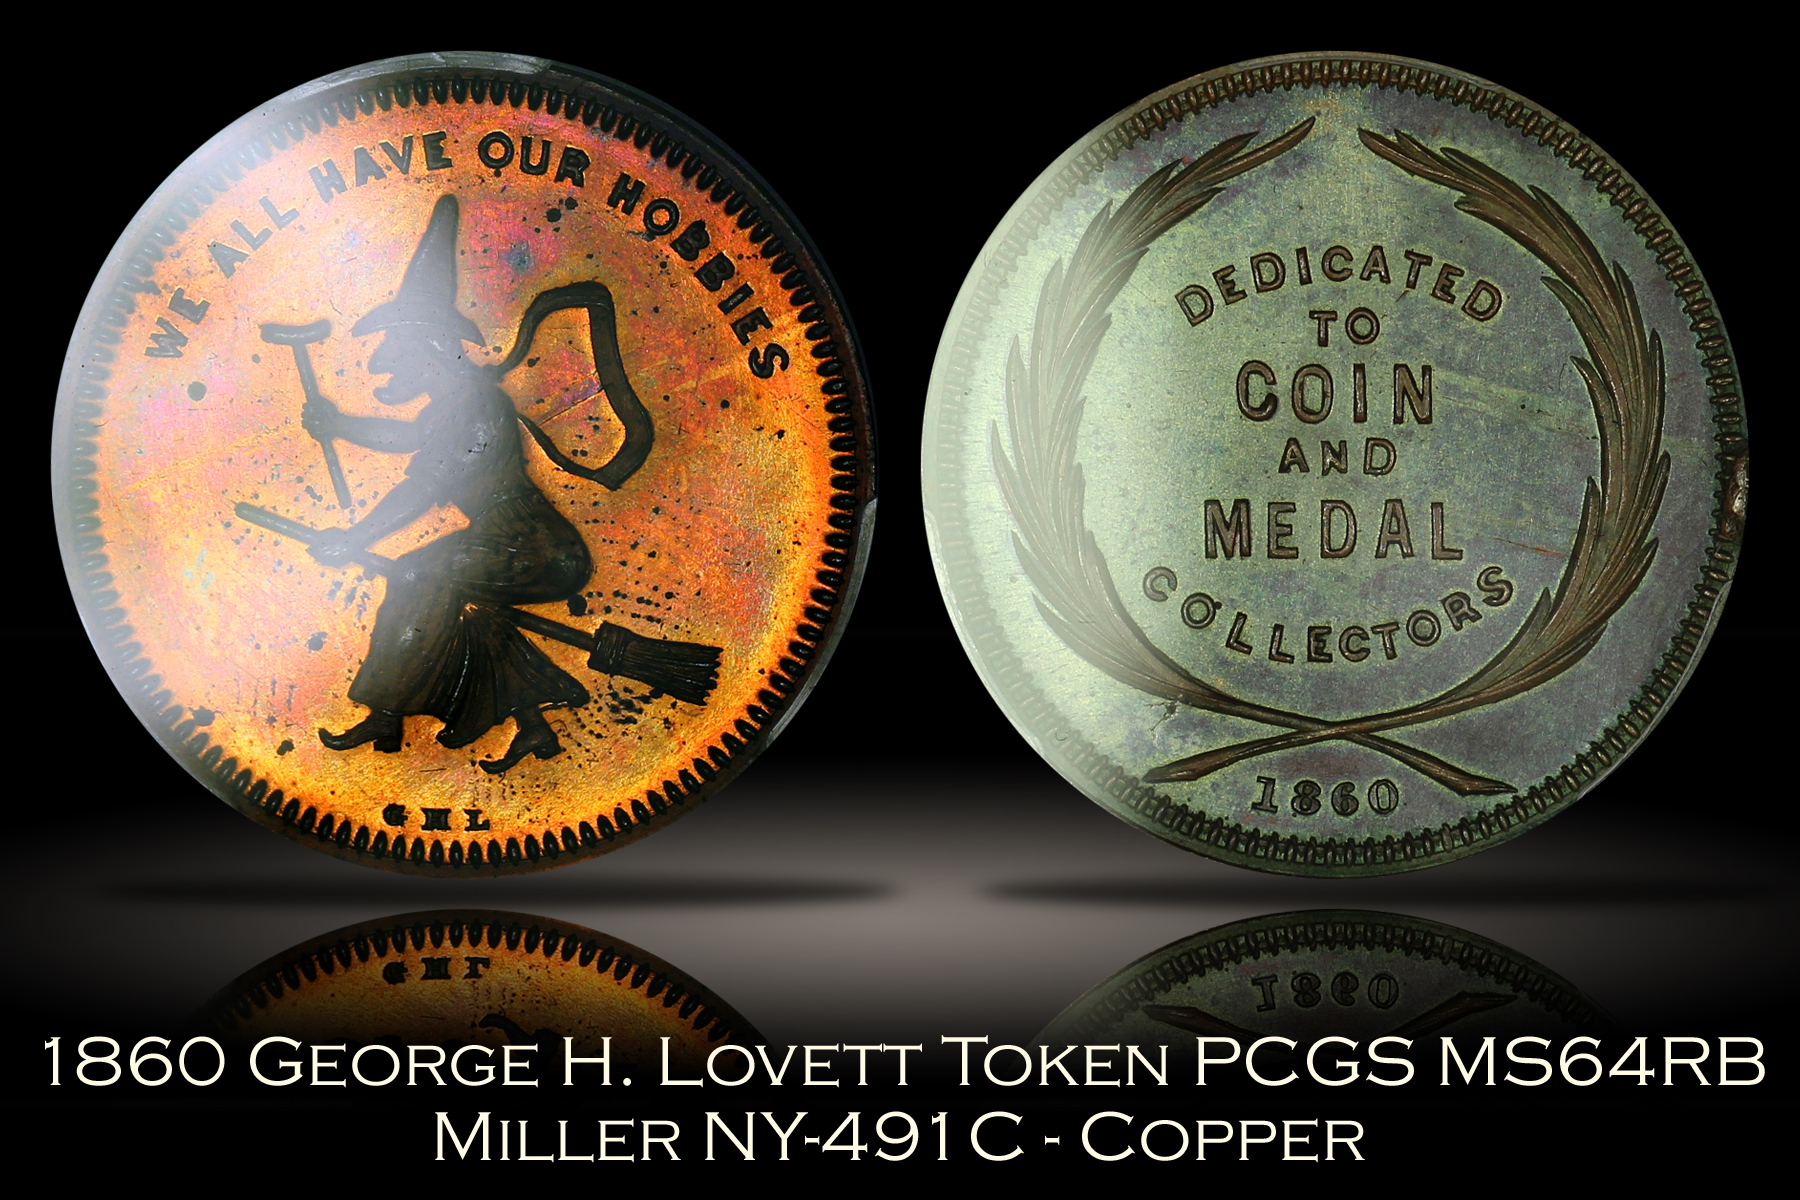 1860 Lovett We All Have Our Hobbies Token Miller NY-491C Copper PCGS MS64RB